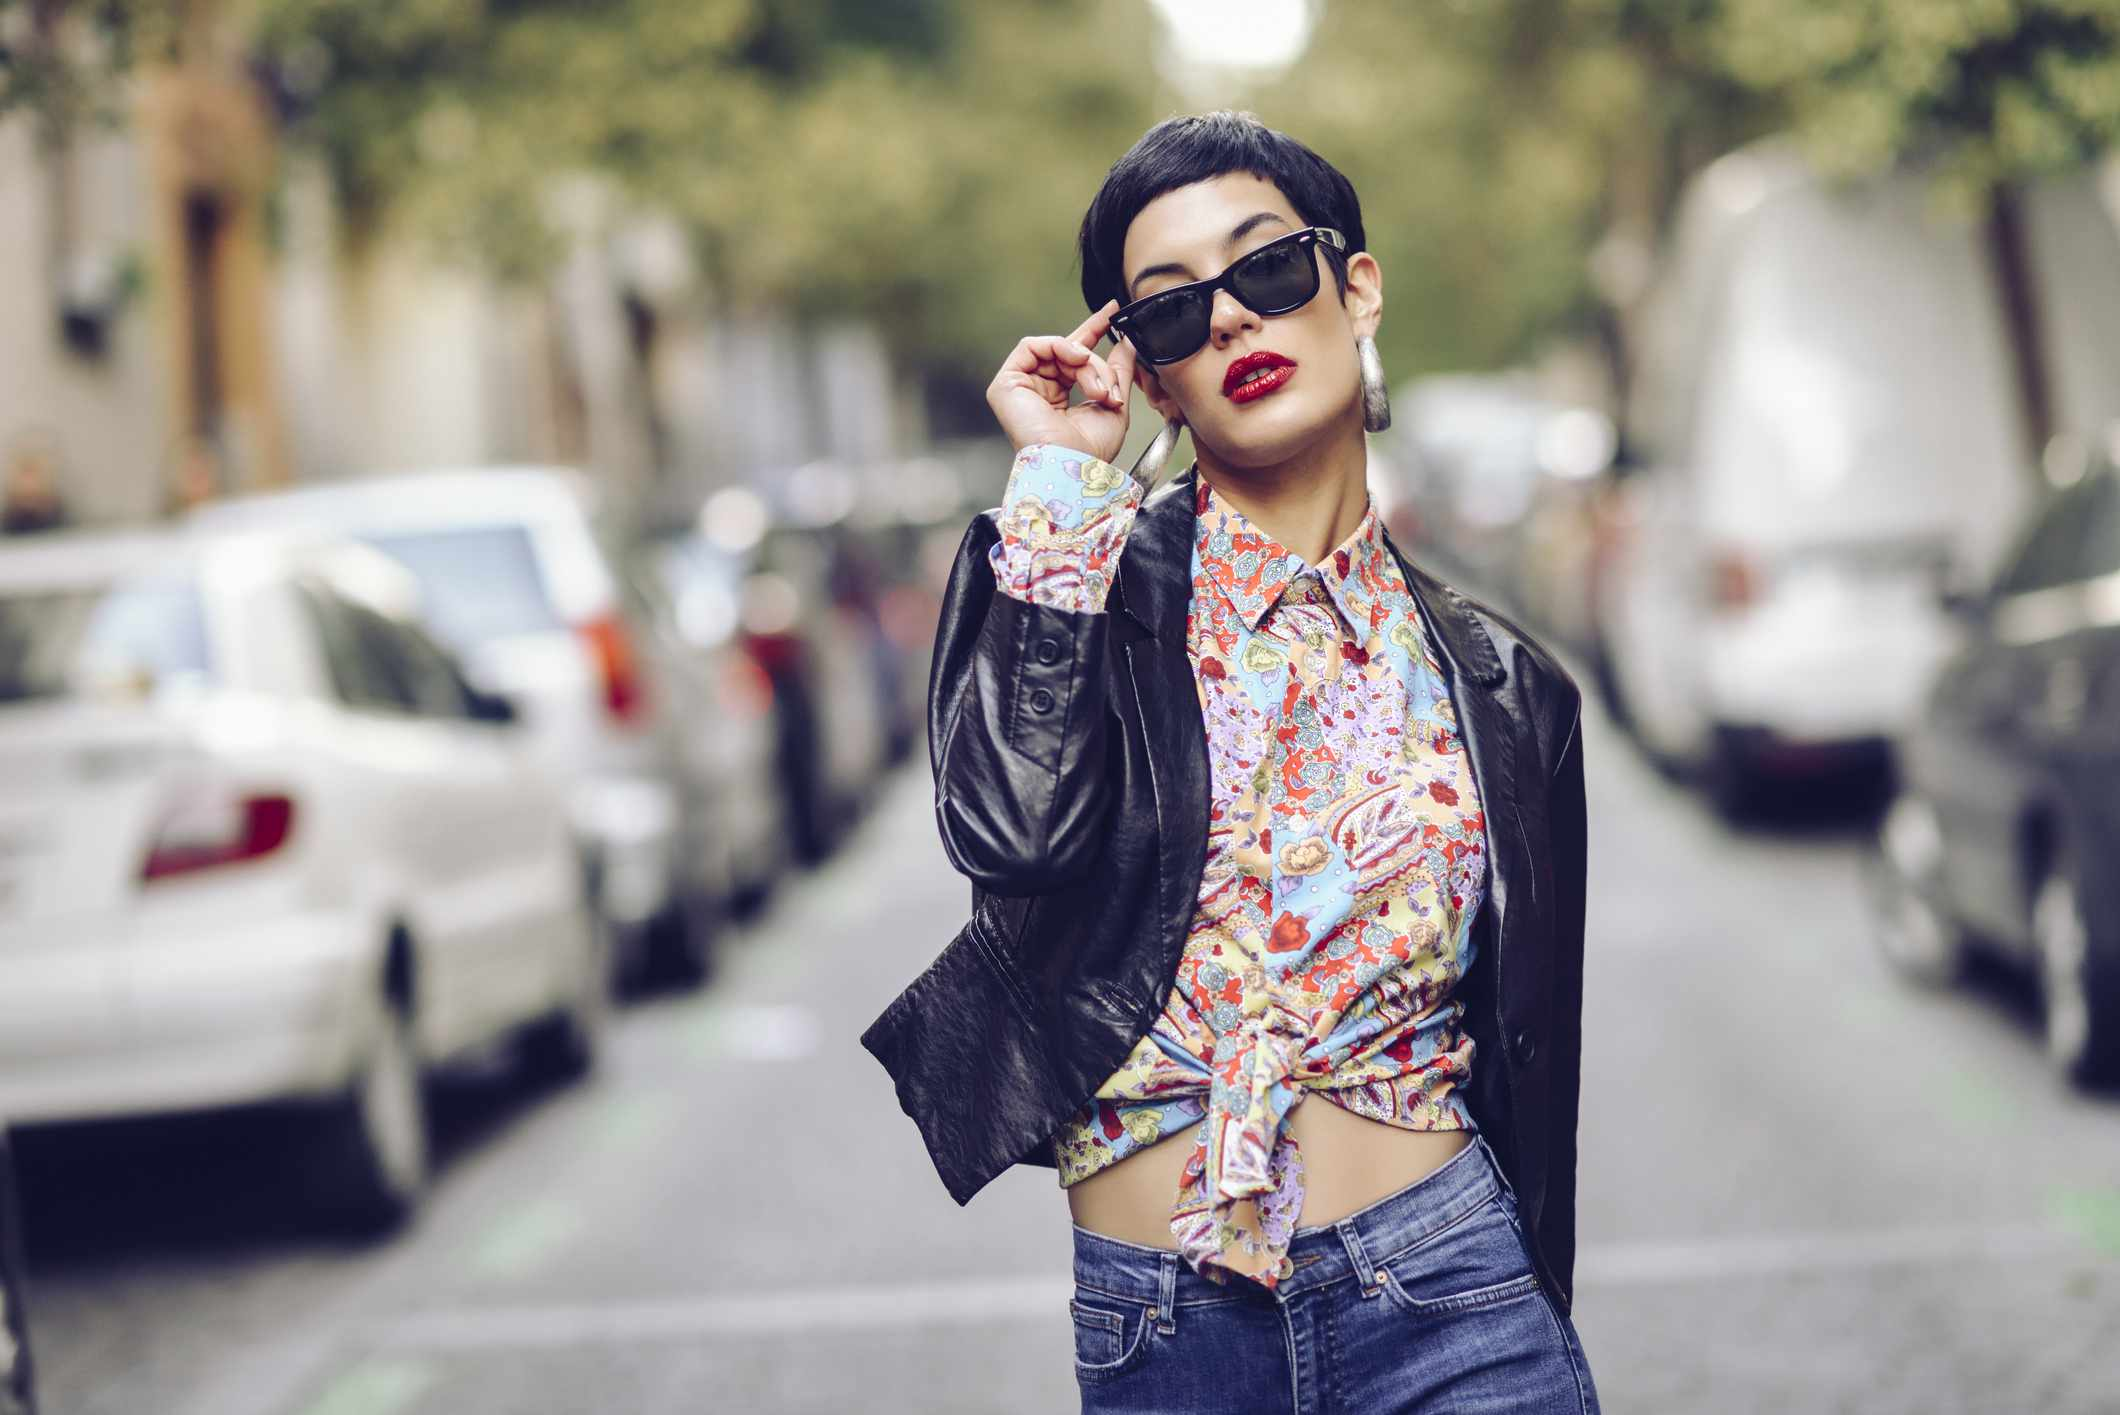 confident fashionable young woman wearing sunglasses and leather jacket